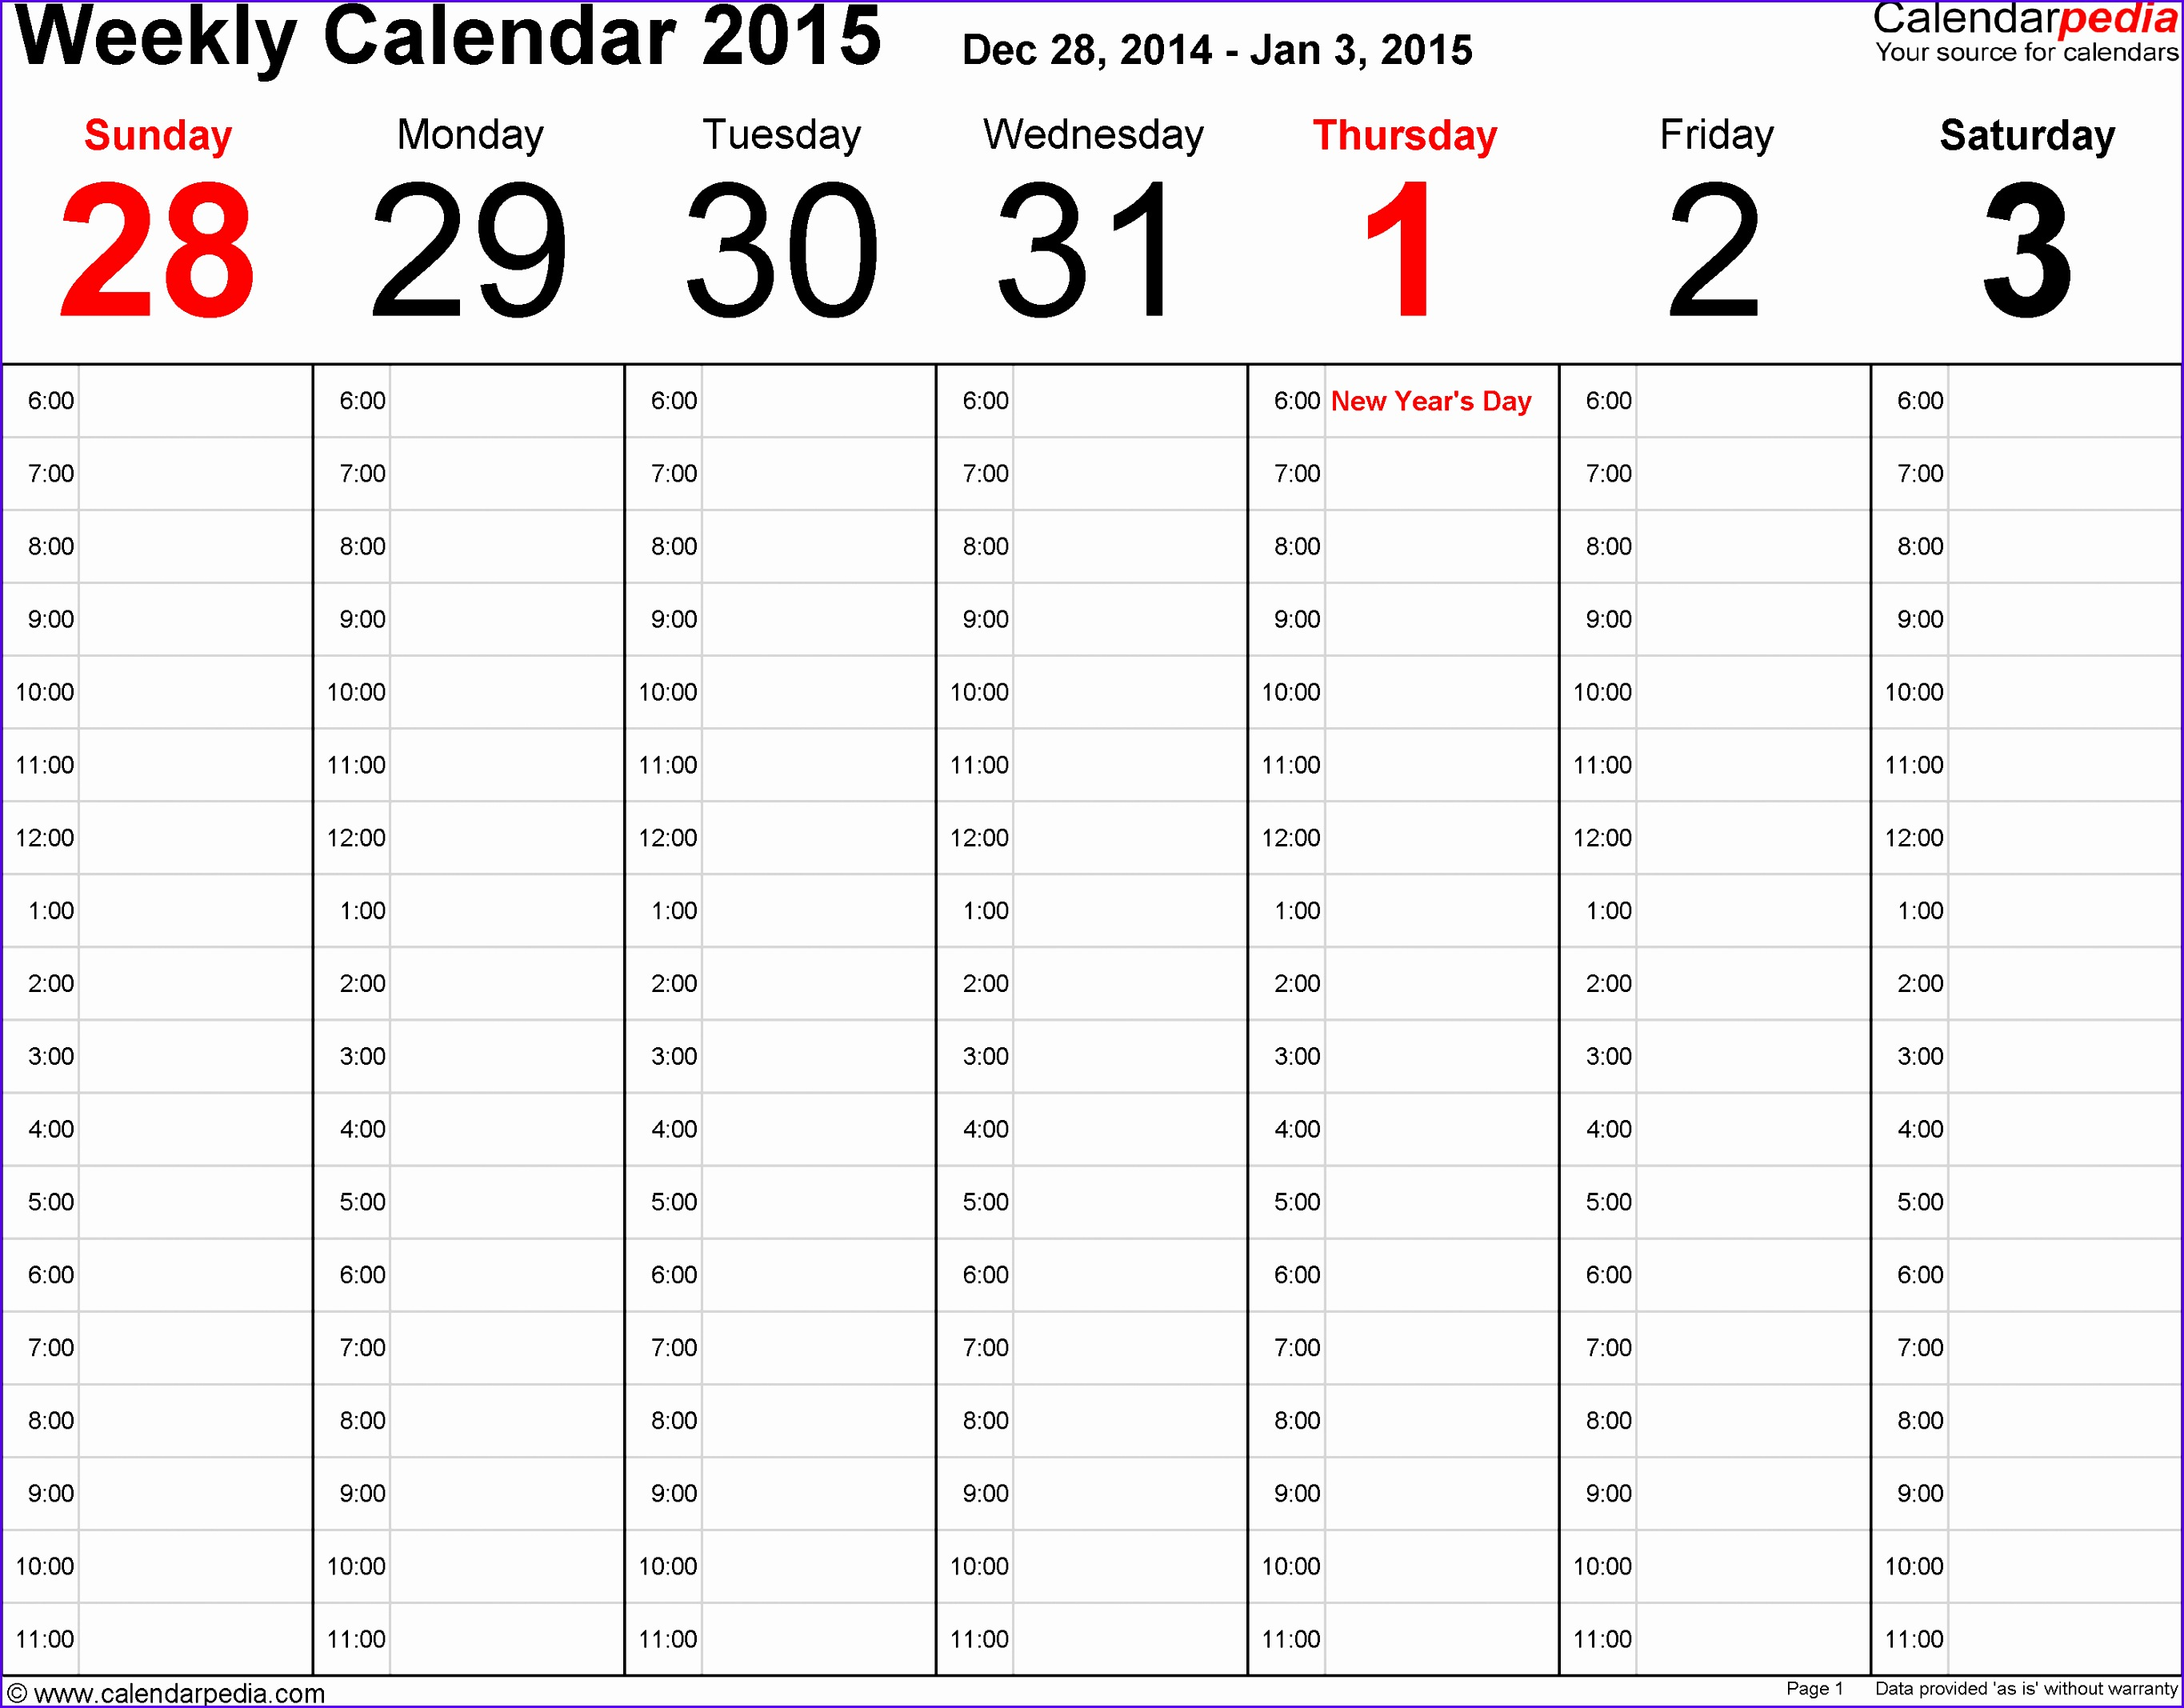 Weekly calendar template for Excel version landscape 53 pages time management layout hours per day to 27302135